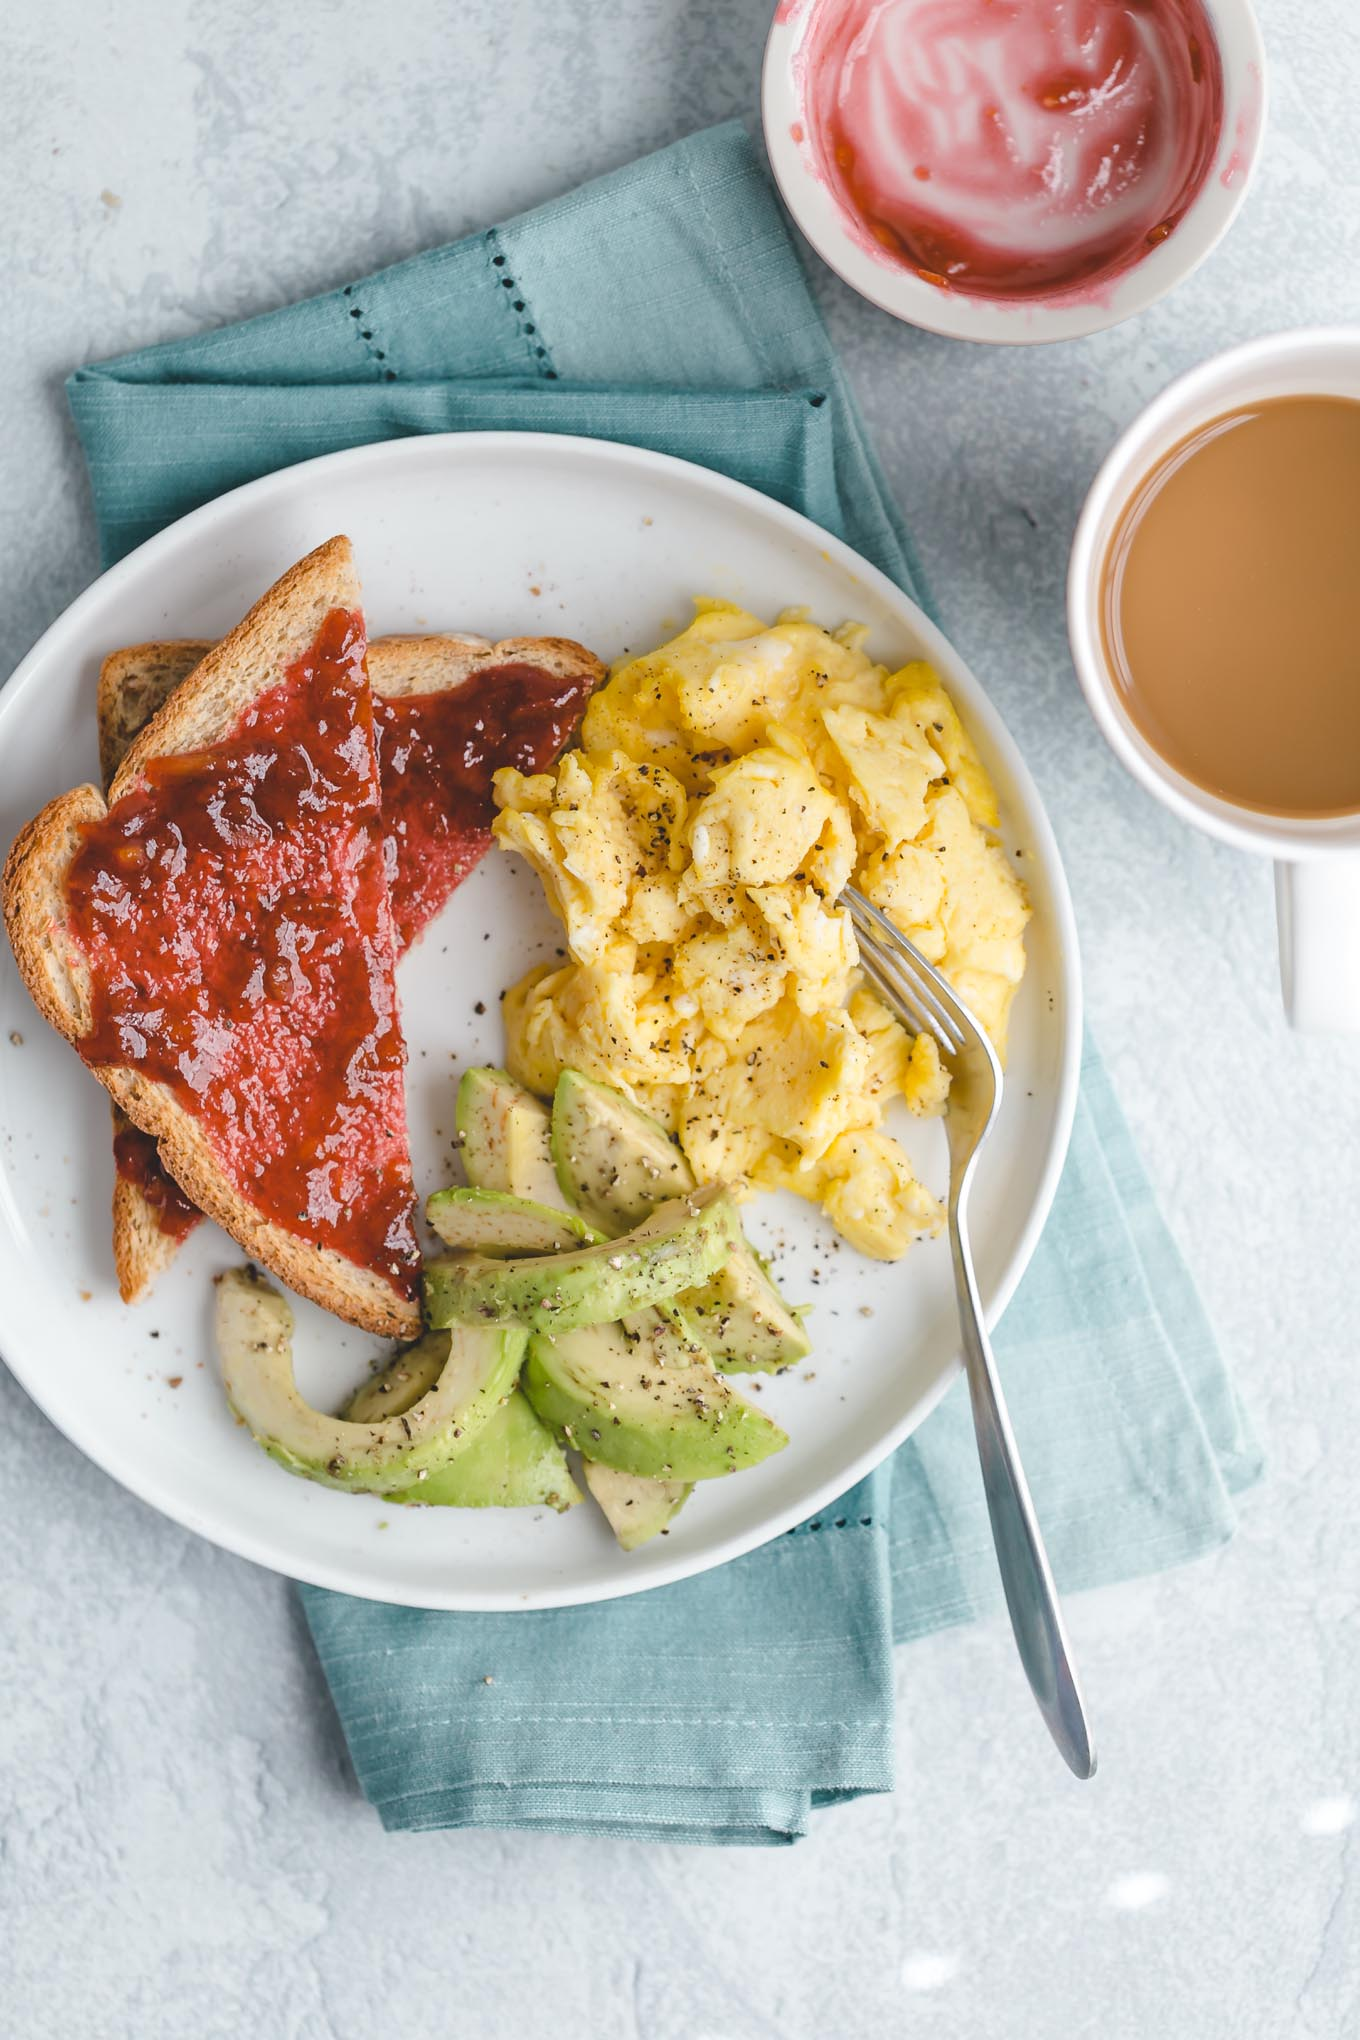 breakfast of scrambled eggs, toast with jam, avocado